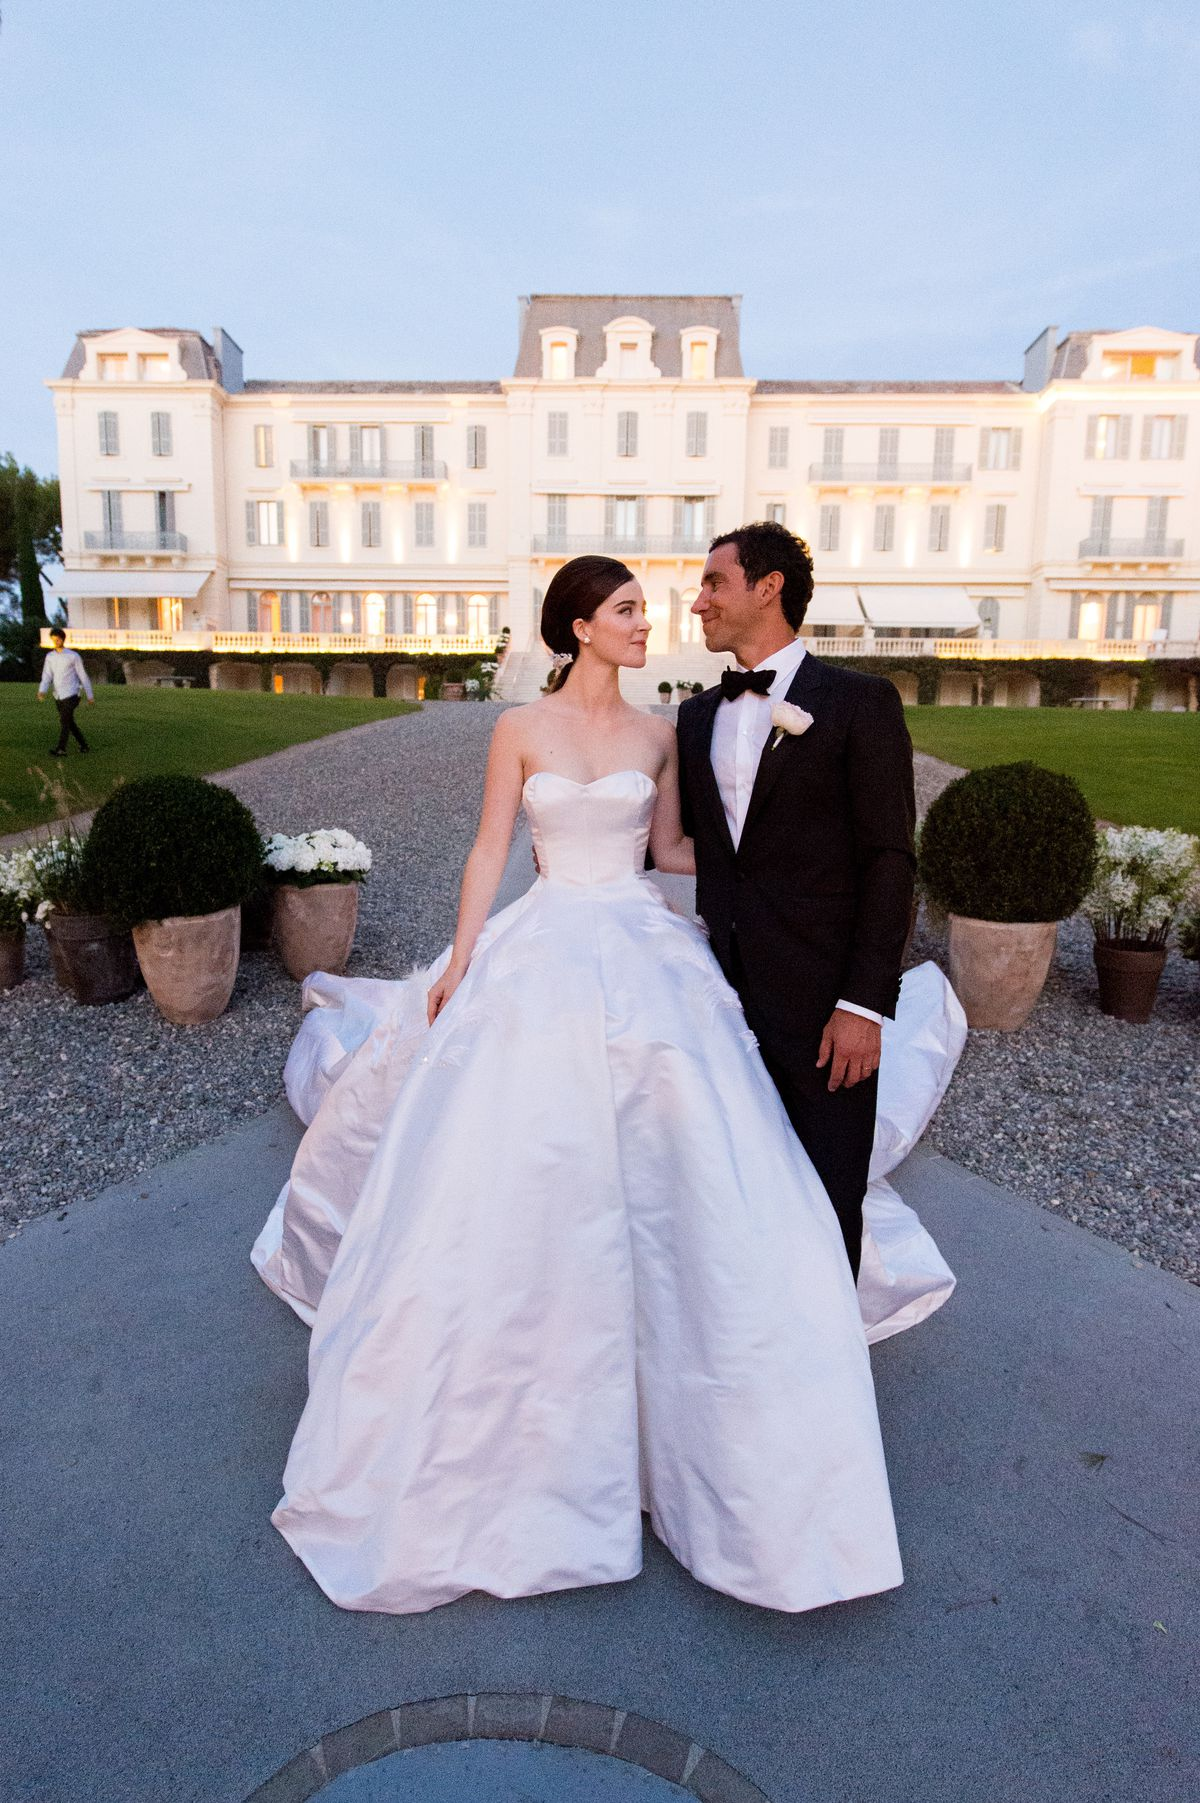 Weddings of the 0.01 Percent - Racked